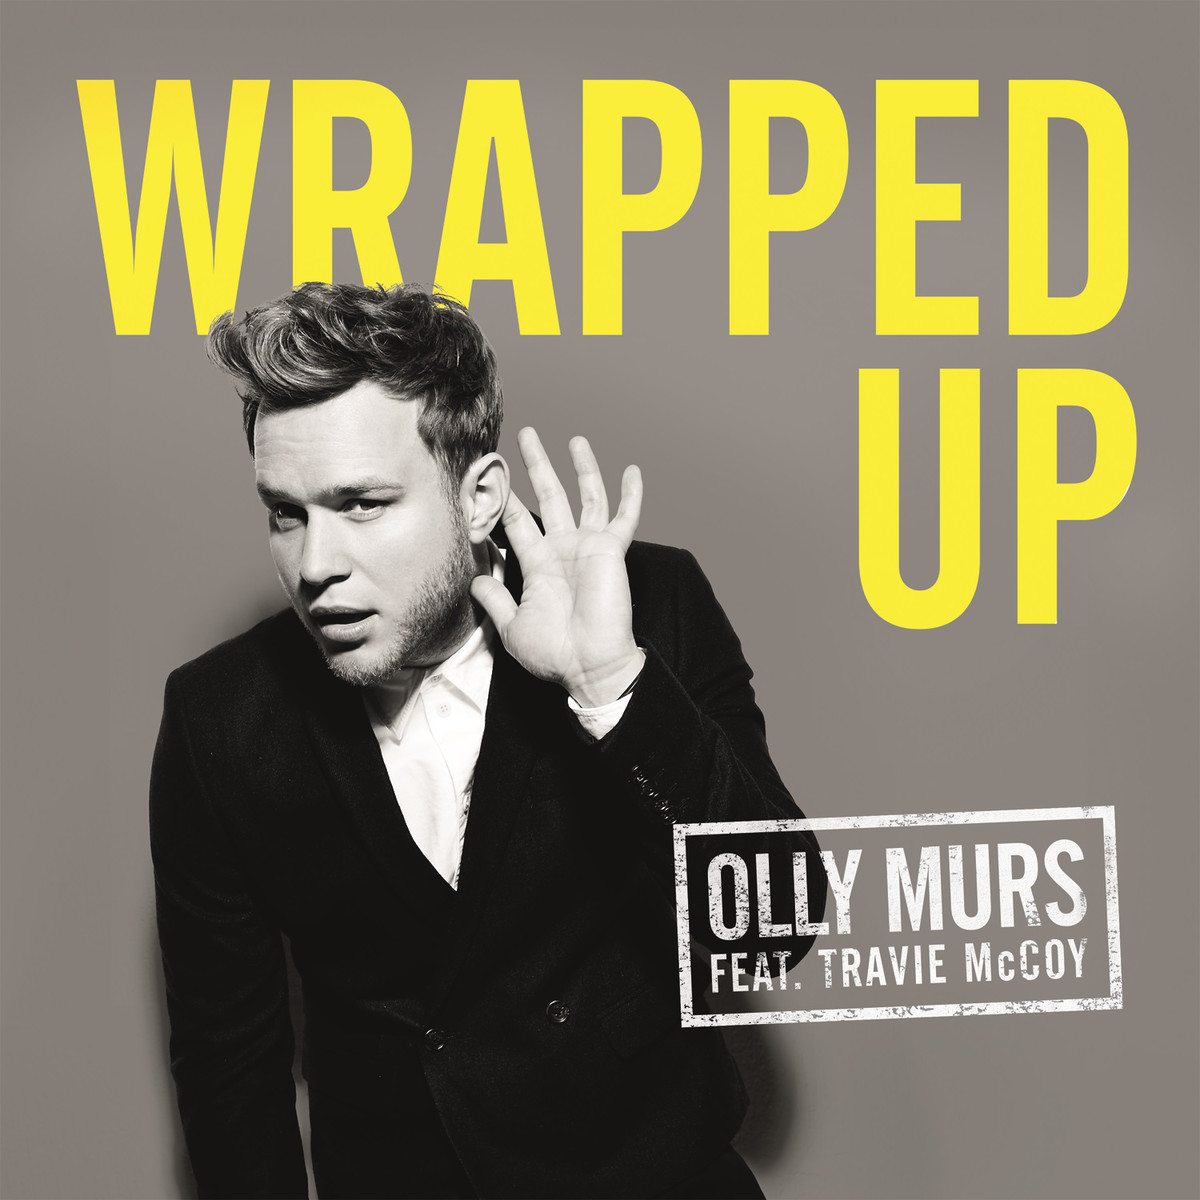 Olly murs wrapped up 2014 1200x1200